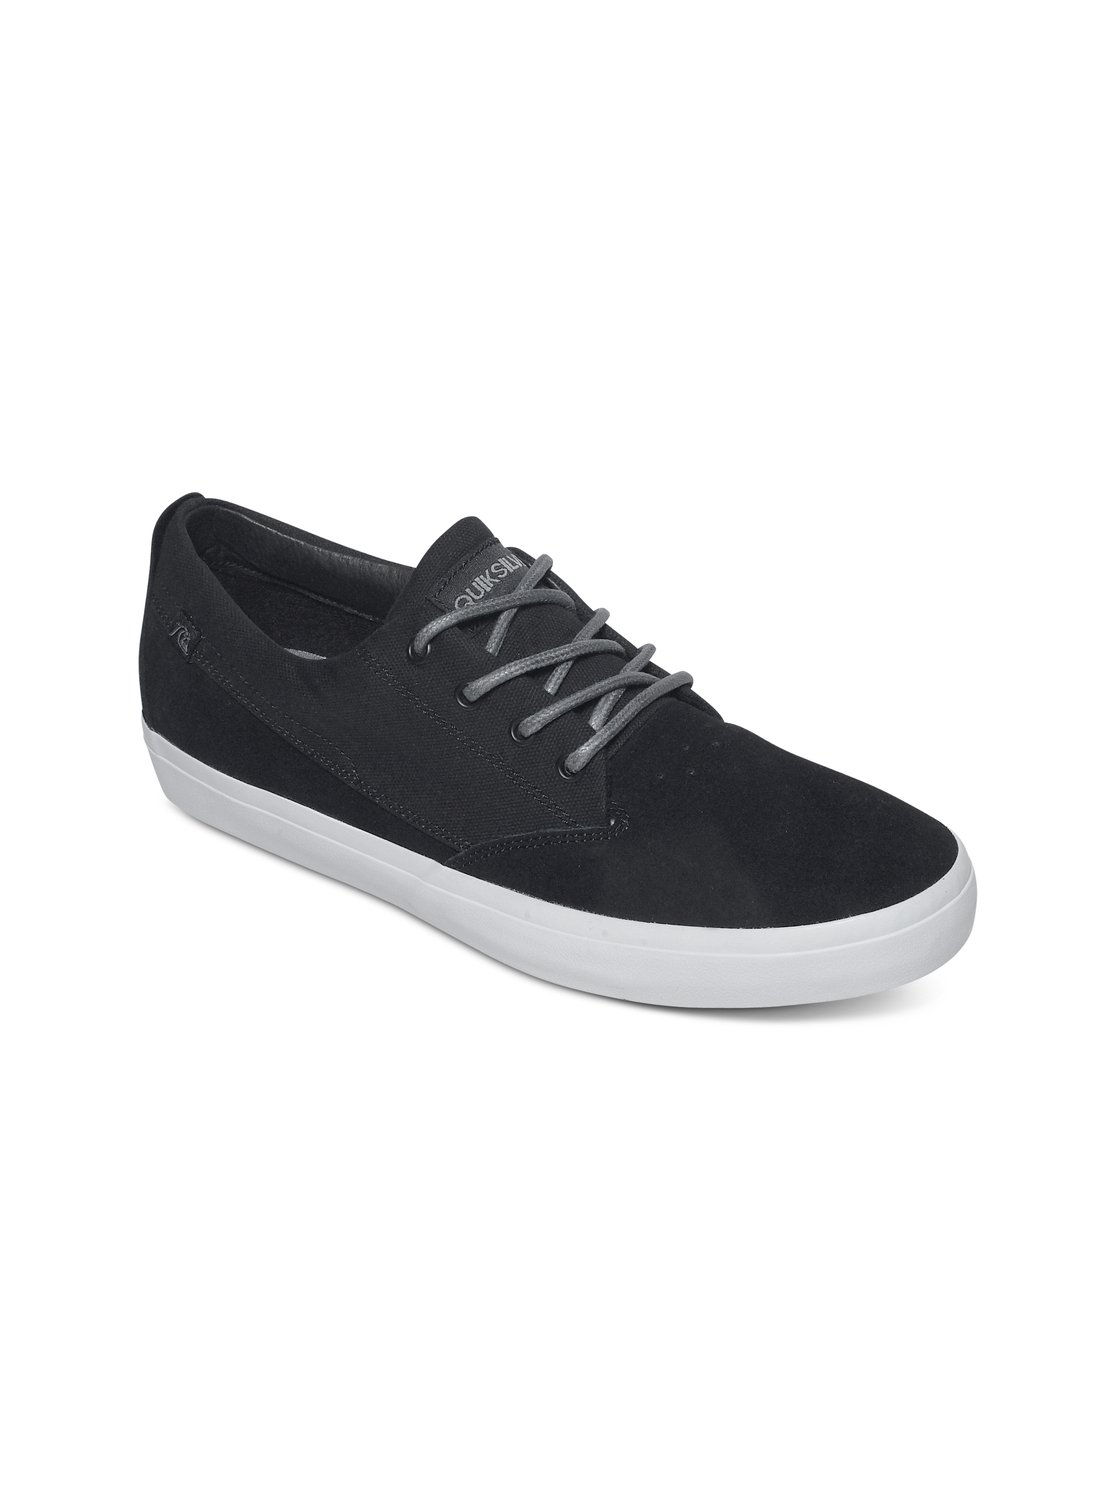 Beacon Suede - Lace-Up Shoes от Quiksilver RU